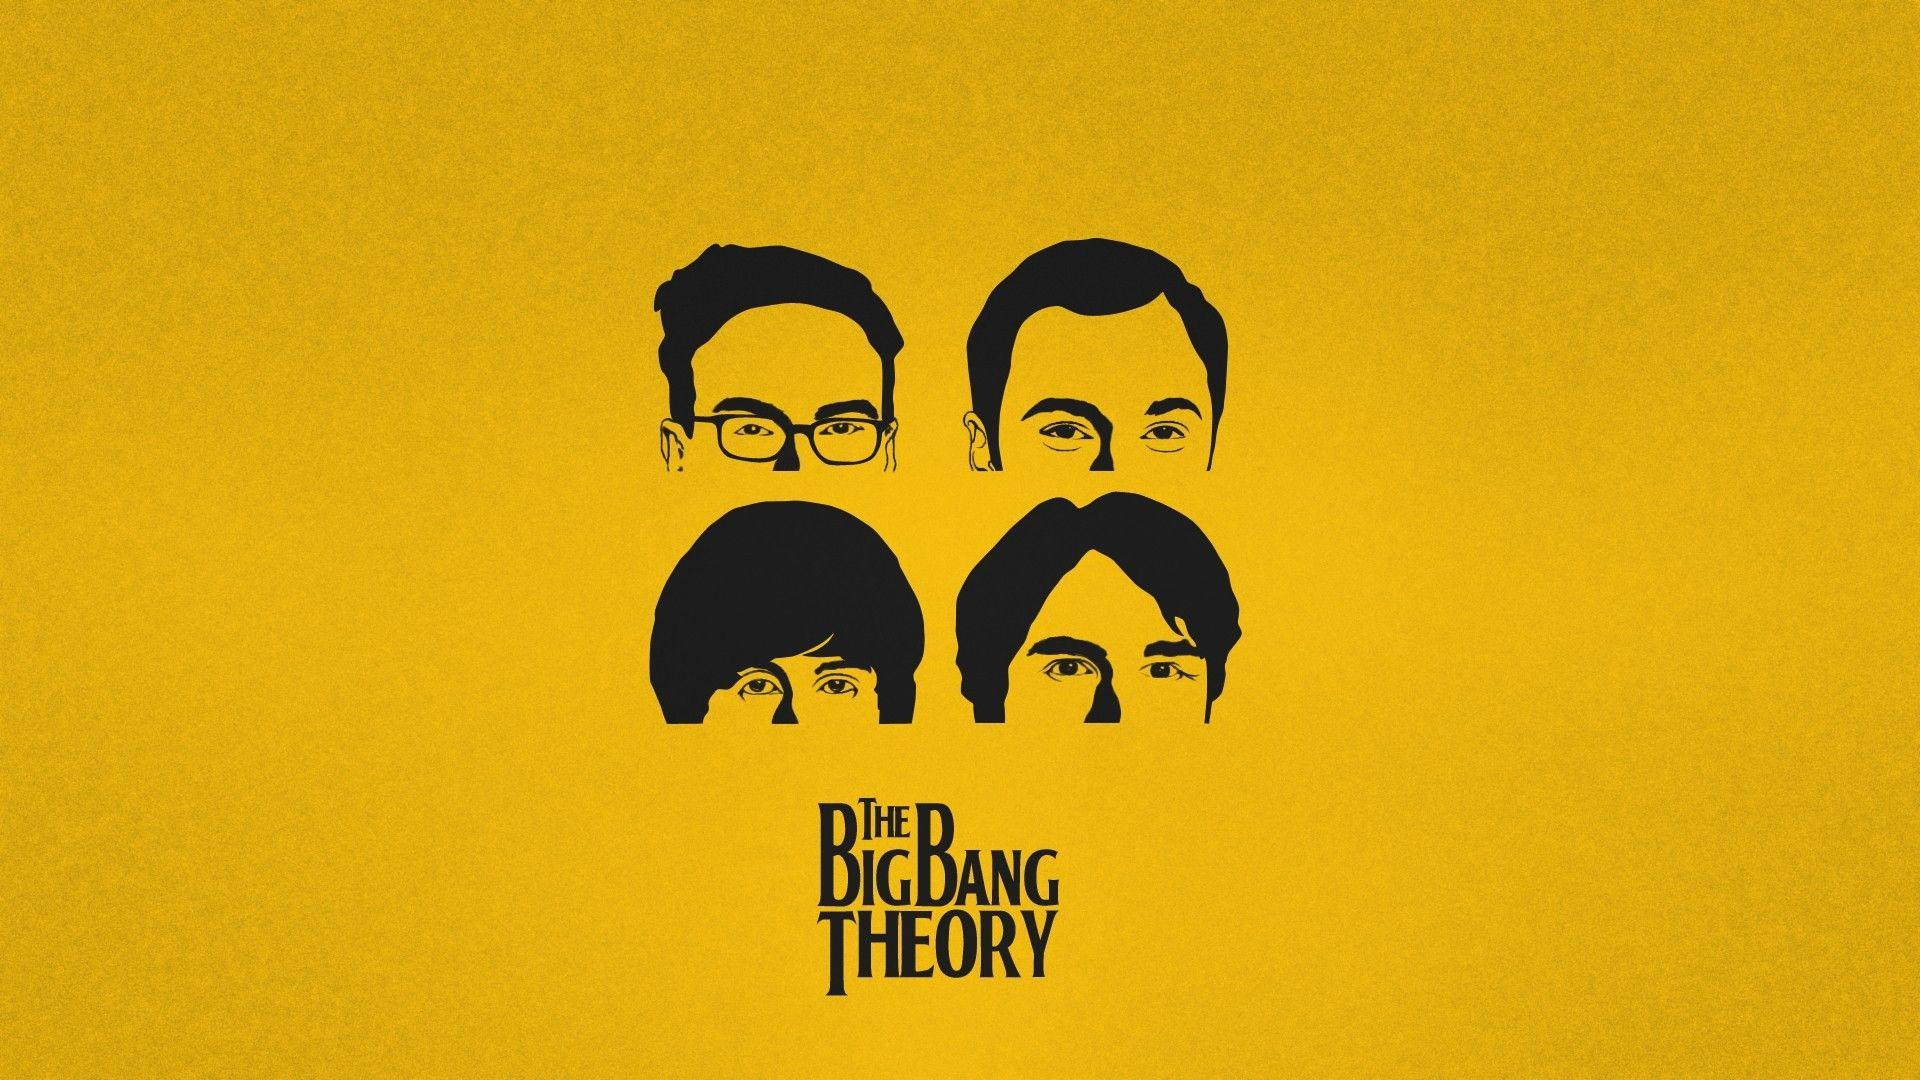 Four haircuts from The Big Bang Theory - Epic Wallpapers